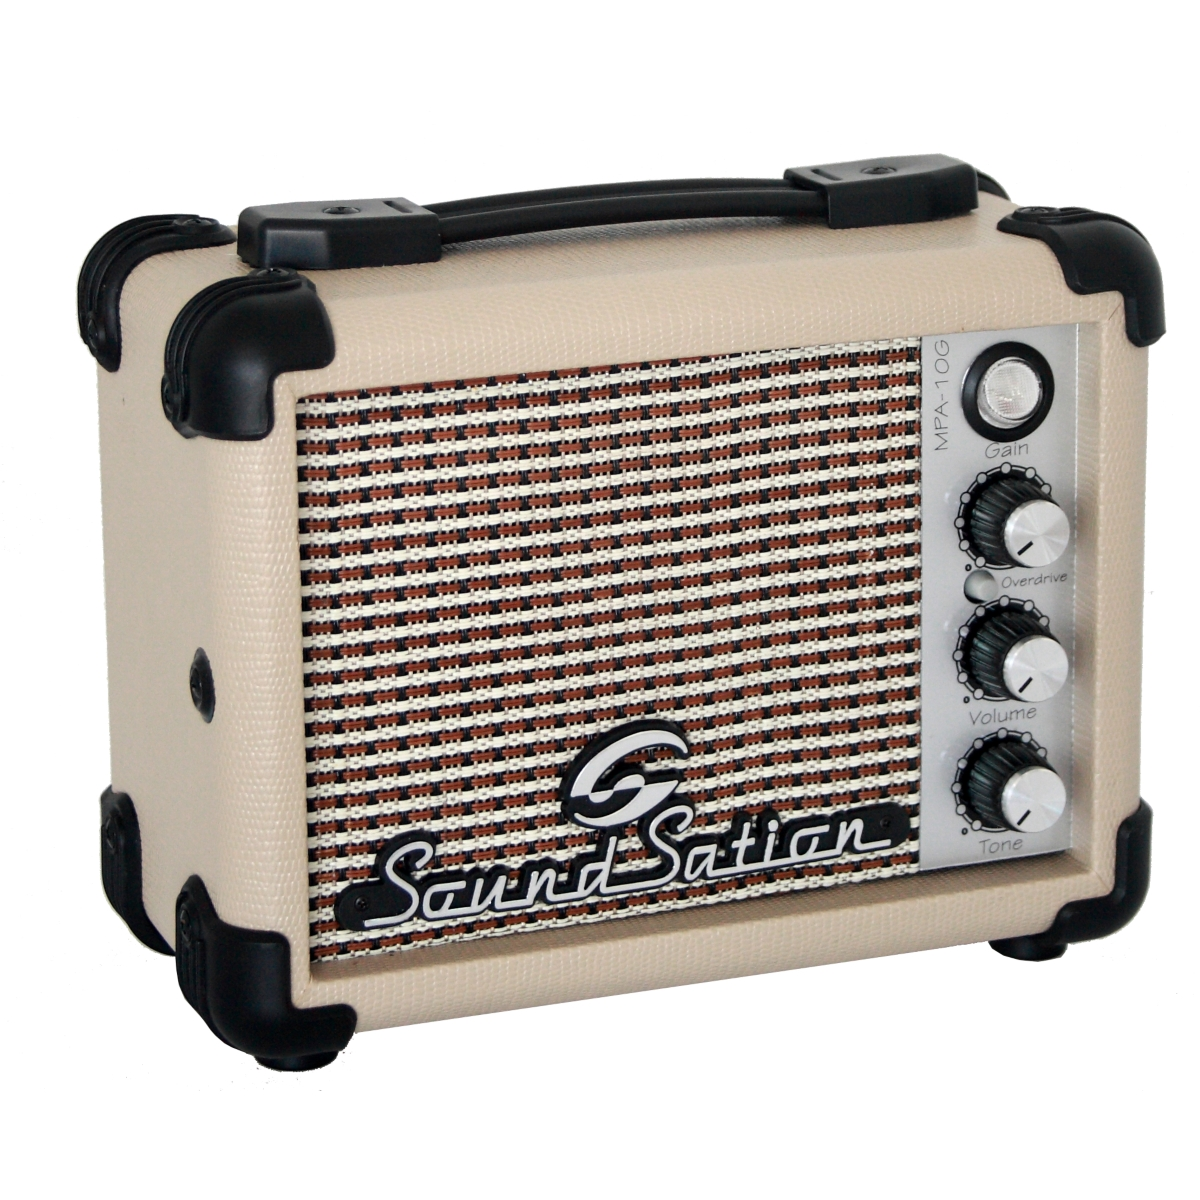 battery operated guitar amp guitar amplifiers. Black Bedroom Furniture Sets. Home Design Ideas